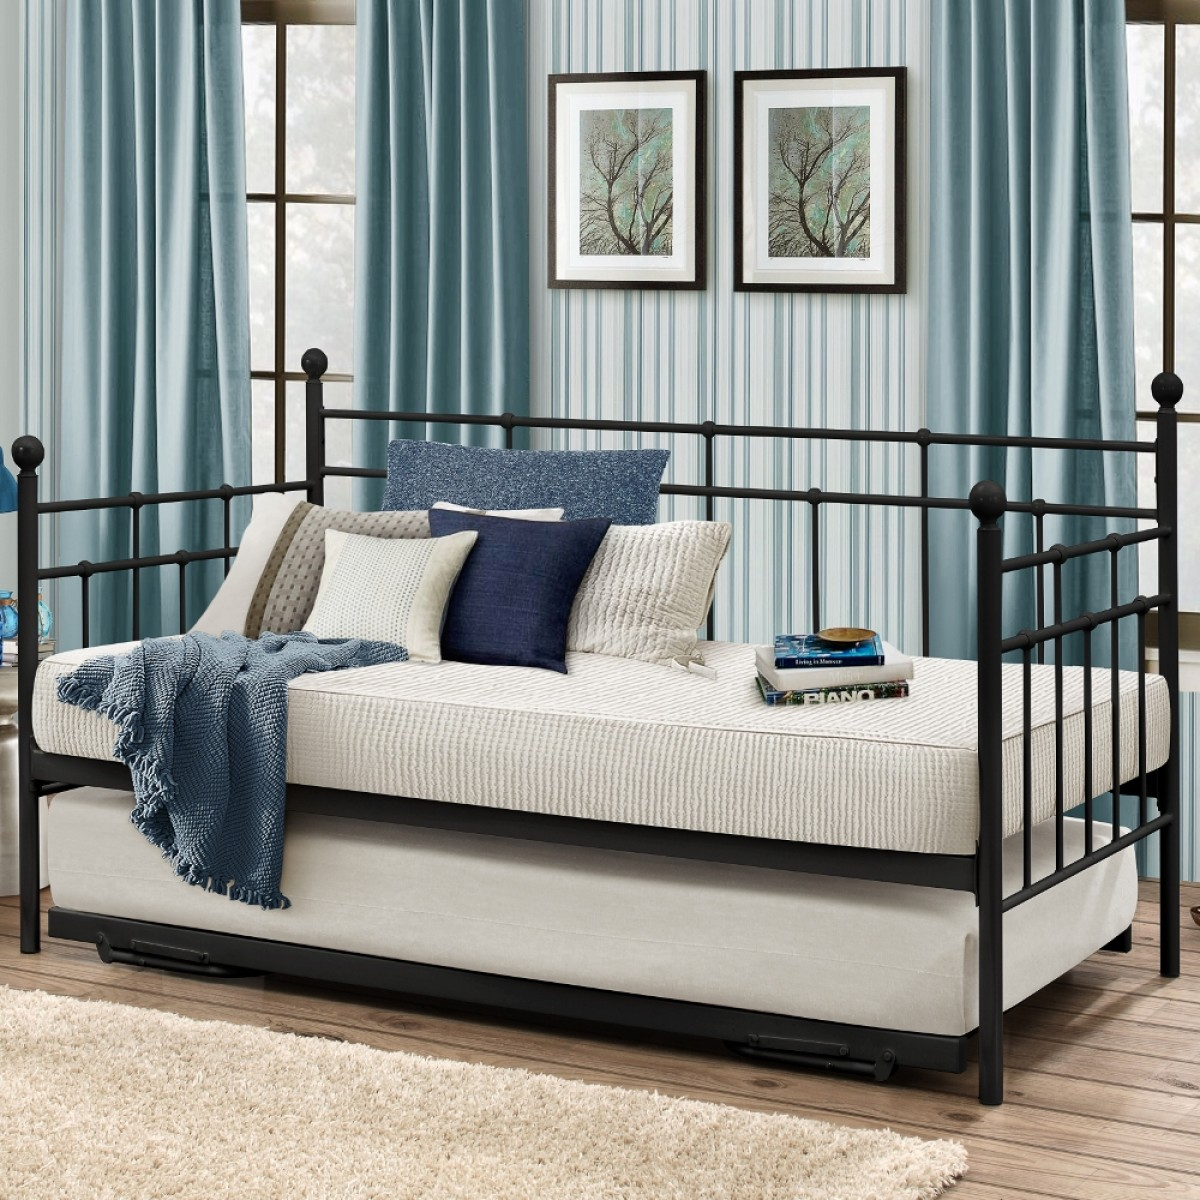 Lyon Black Metal Guest Bed with Trundle